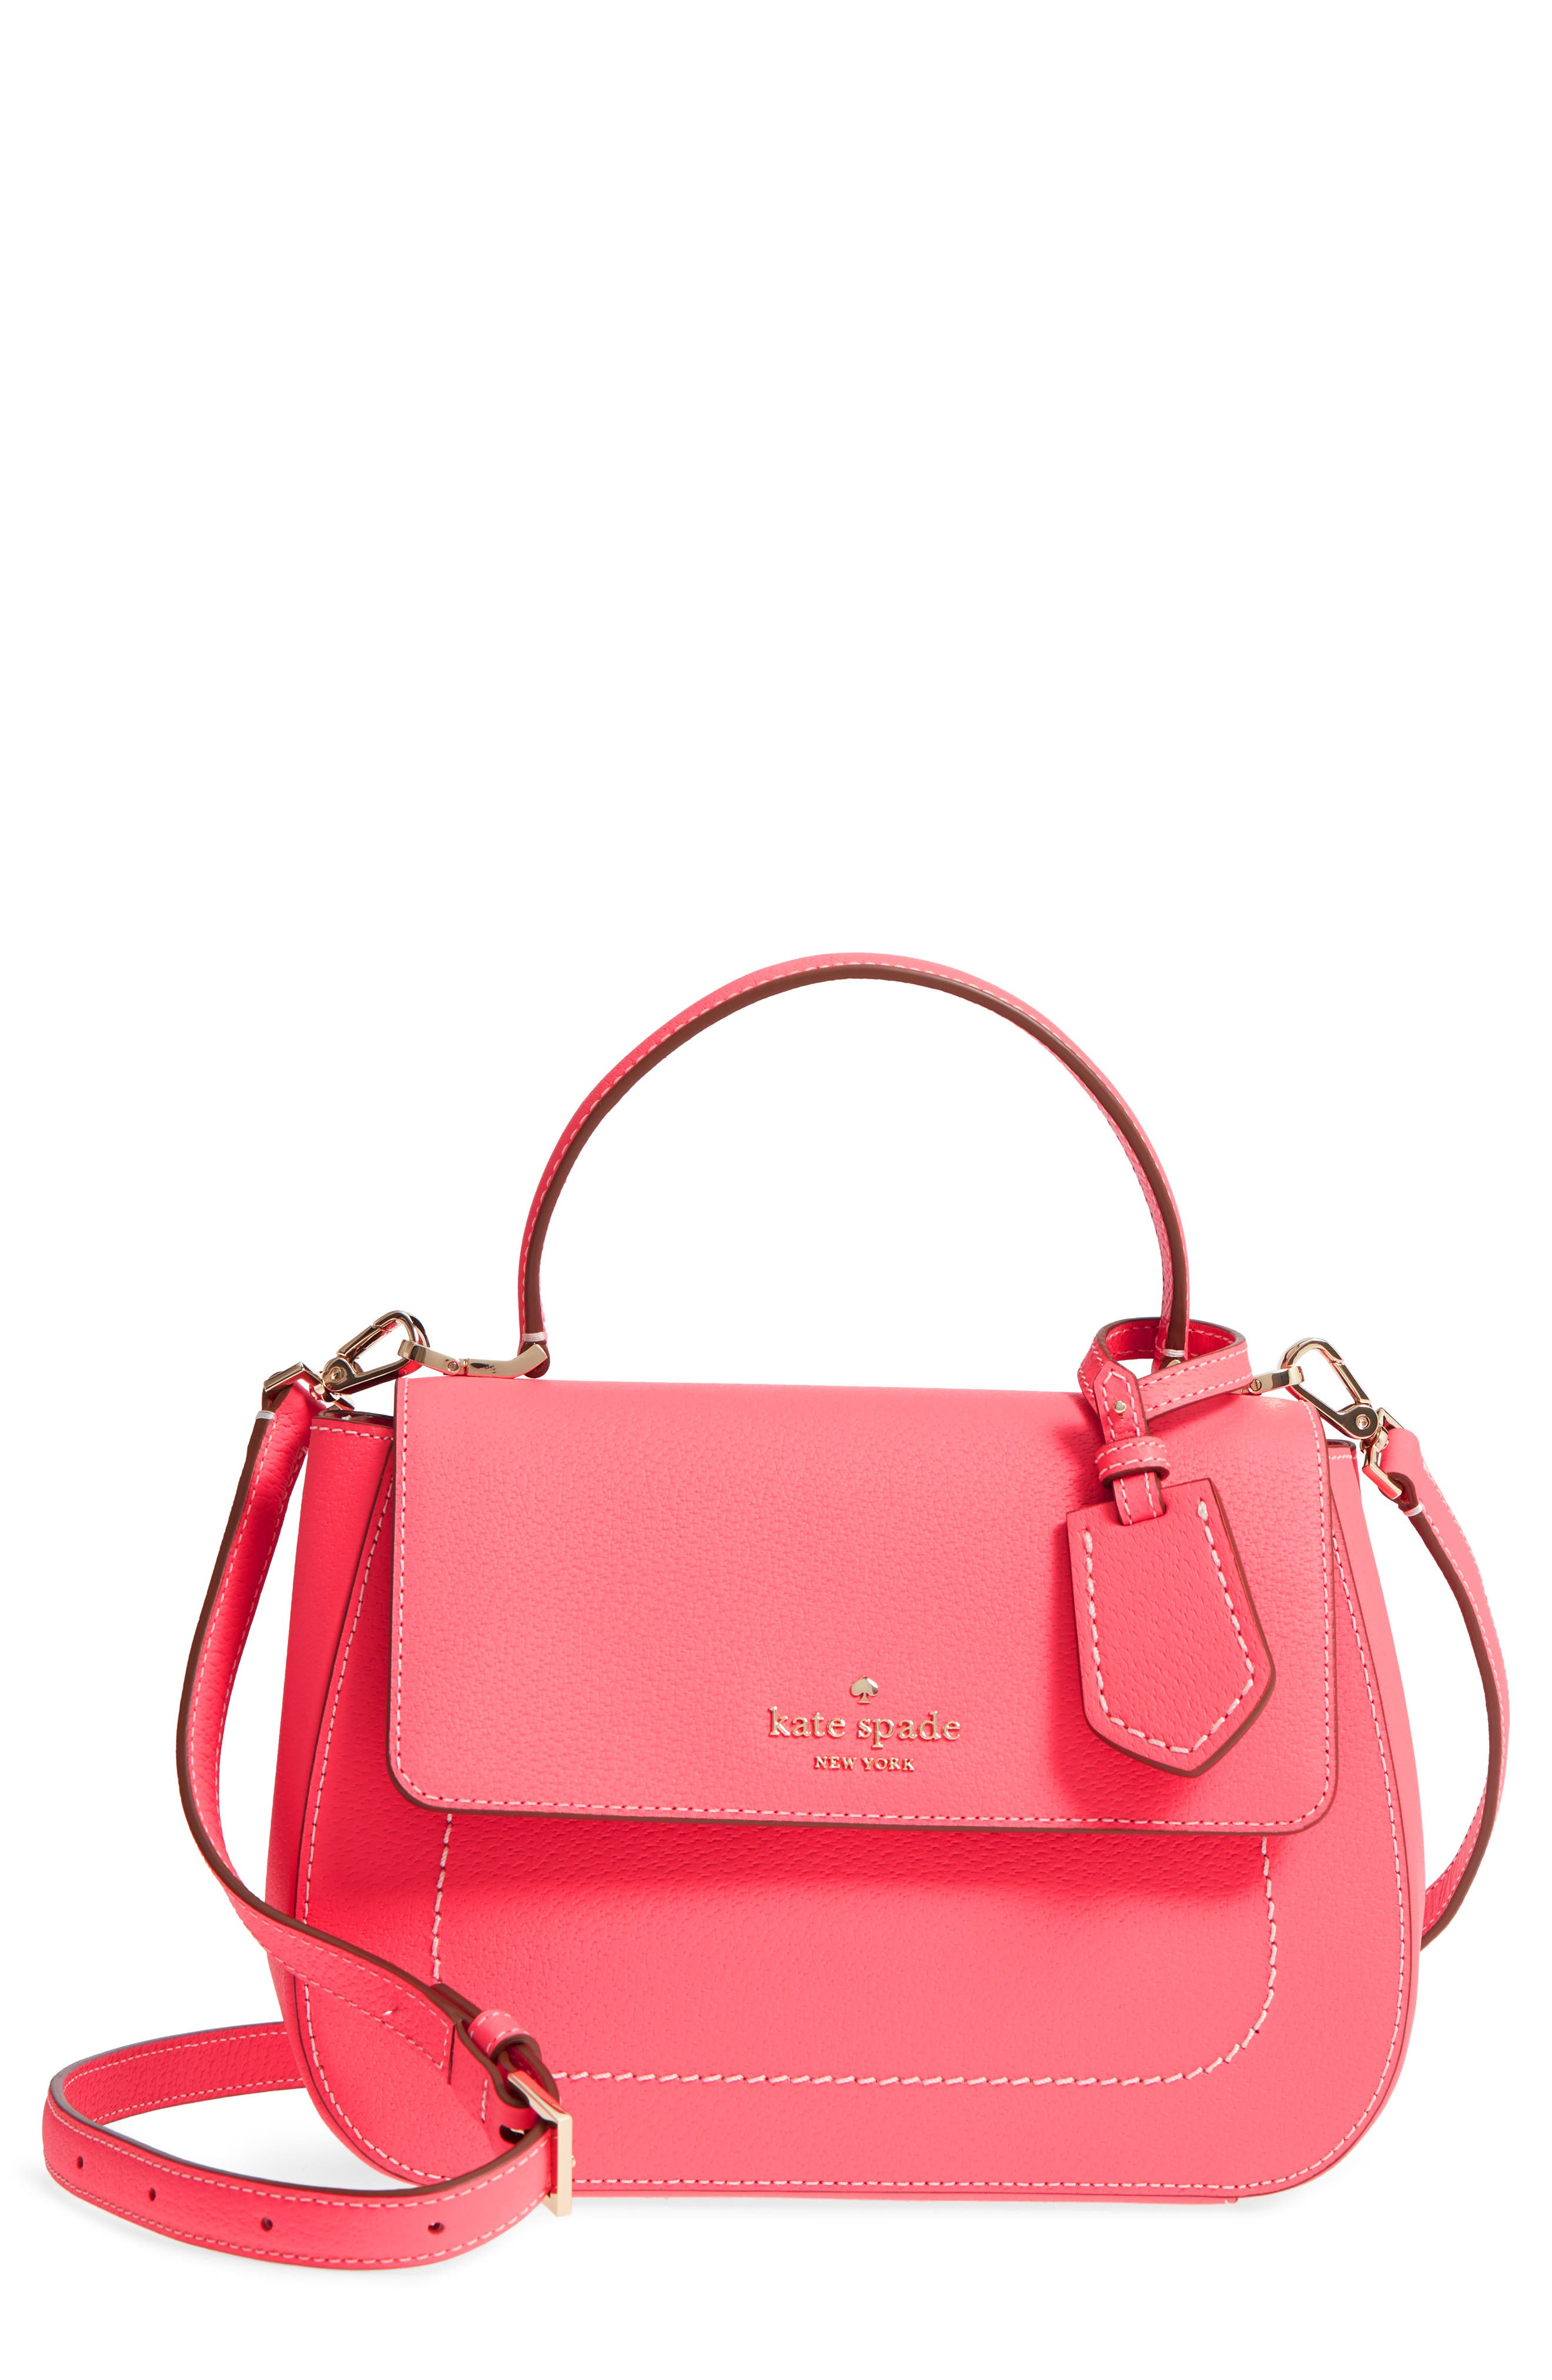 thompson street - justina leather satchel,                             Main thumbnail 1, color,                             Bright Flamingo